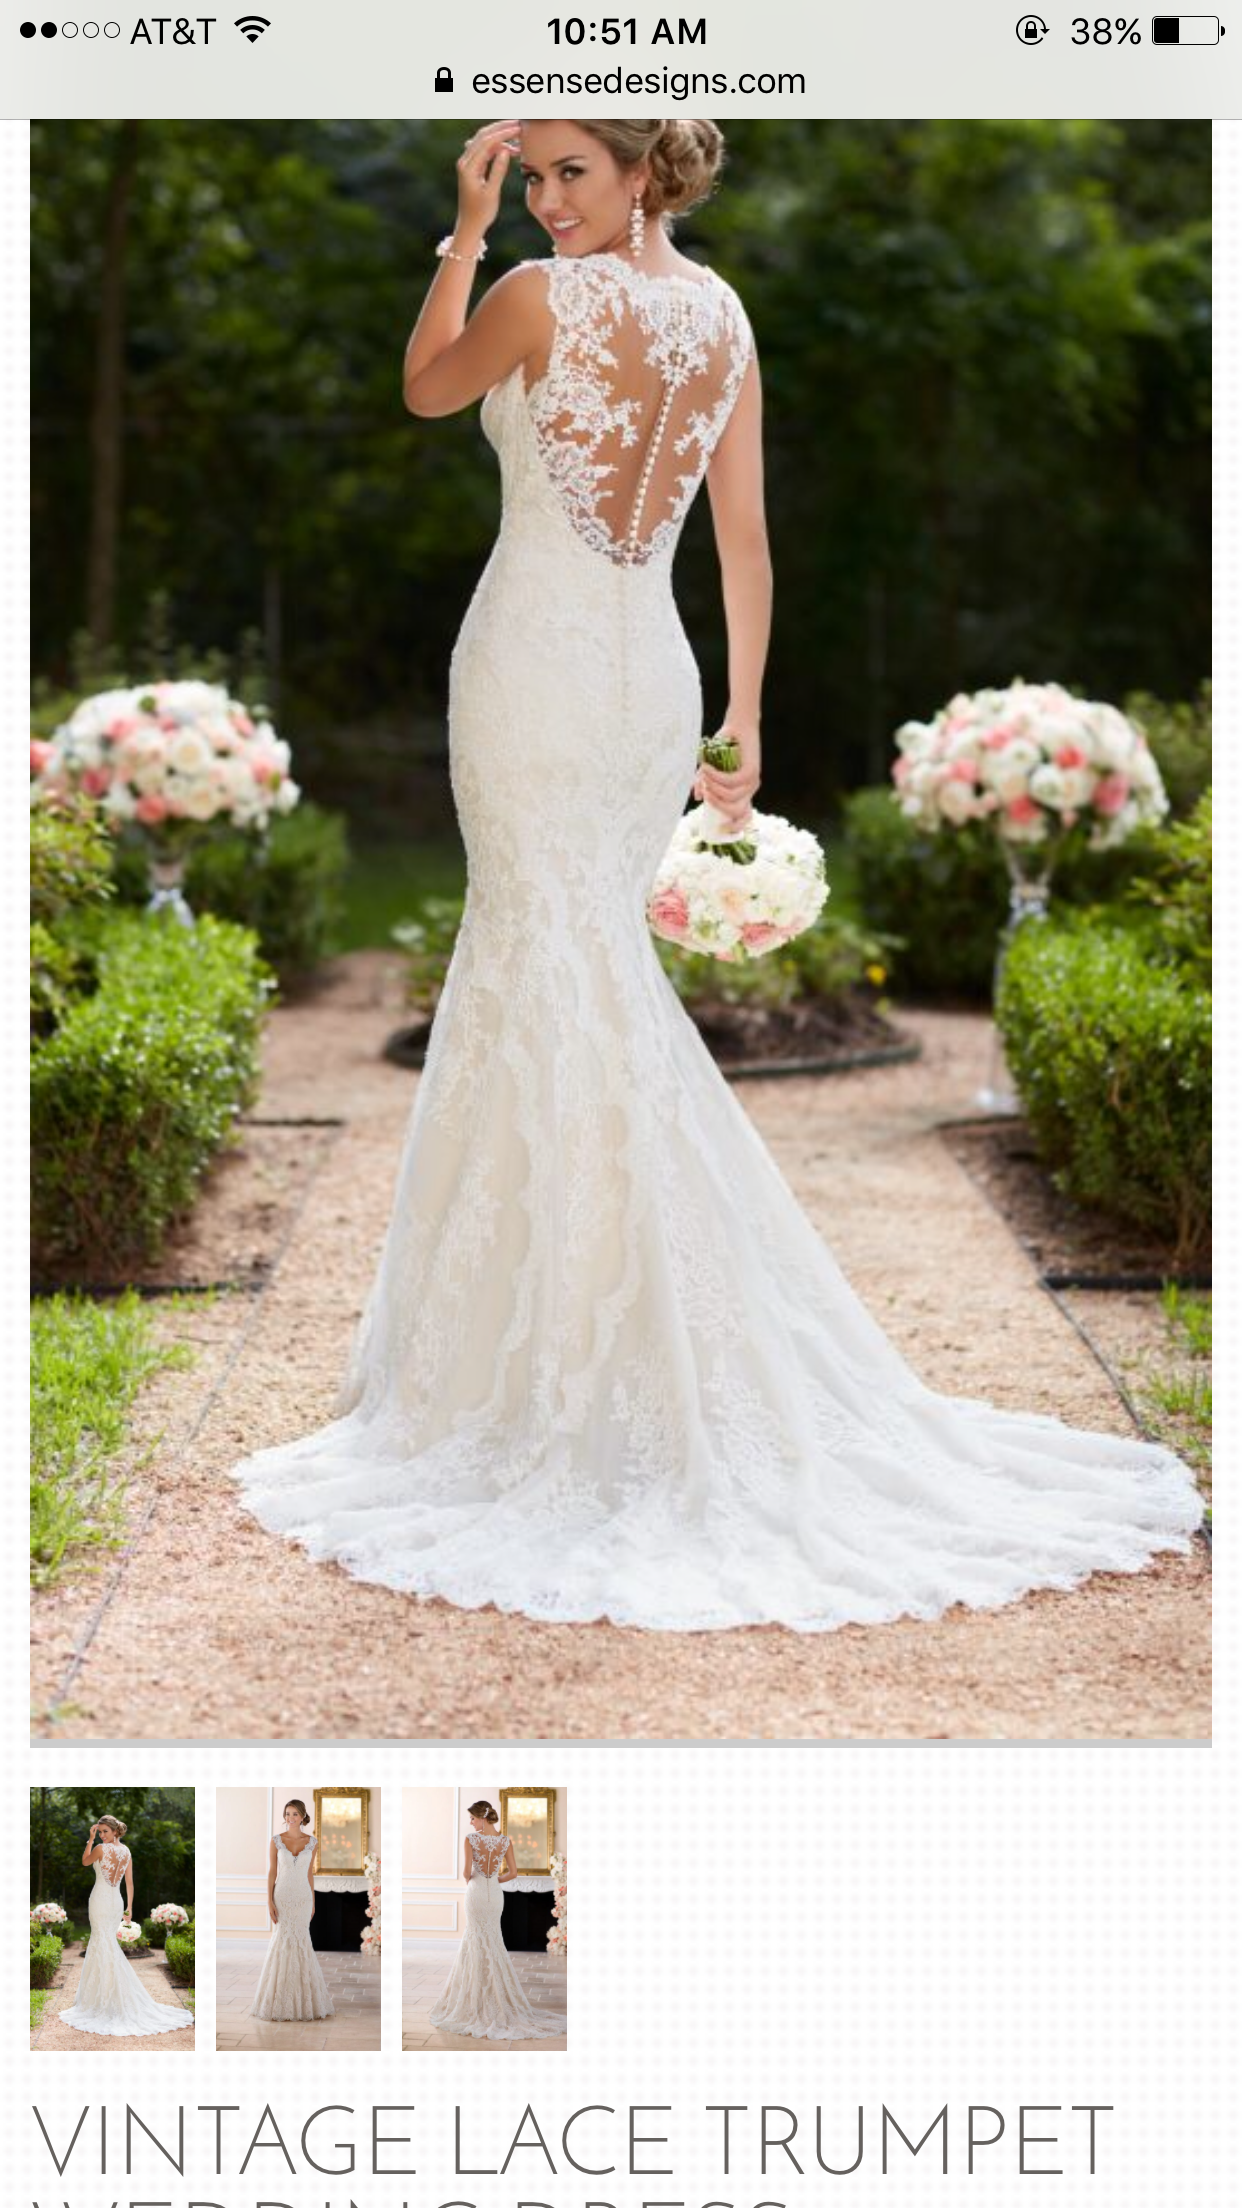 Elite wedding dresses  Pin by Brittany Paige Chapple on Dresses Glory  Pinterest